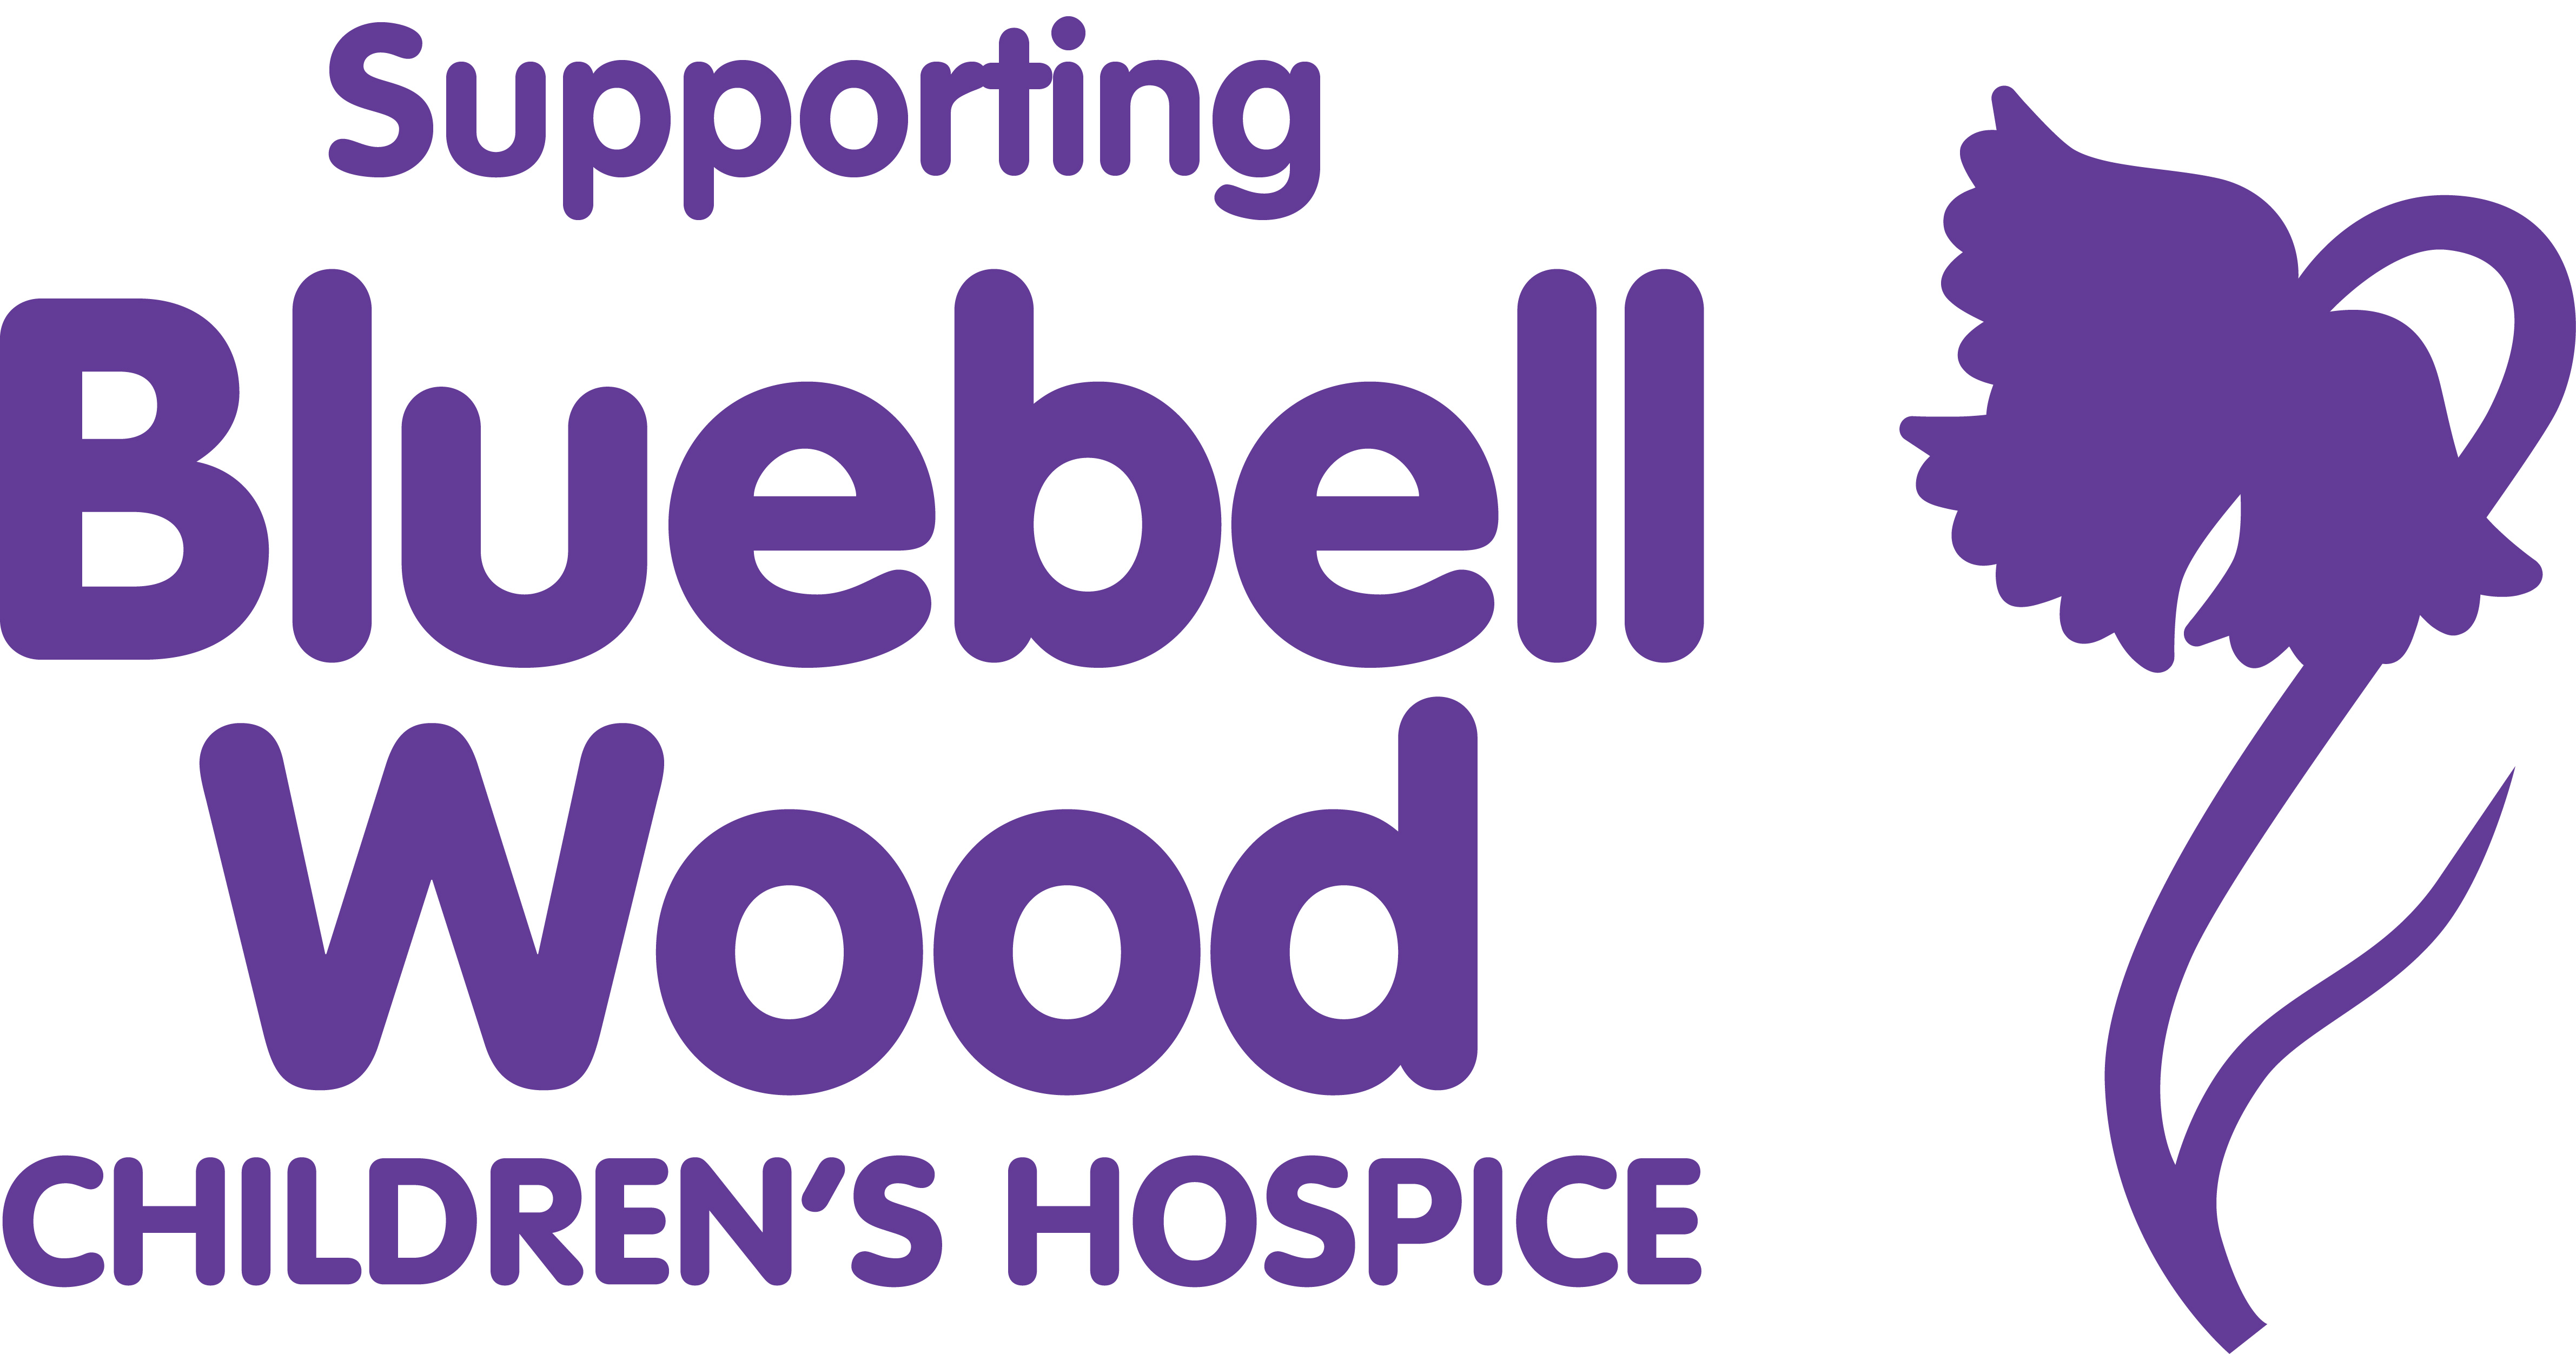 Fundraising for Bluebell Wood Children's Hospice